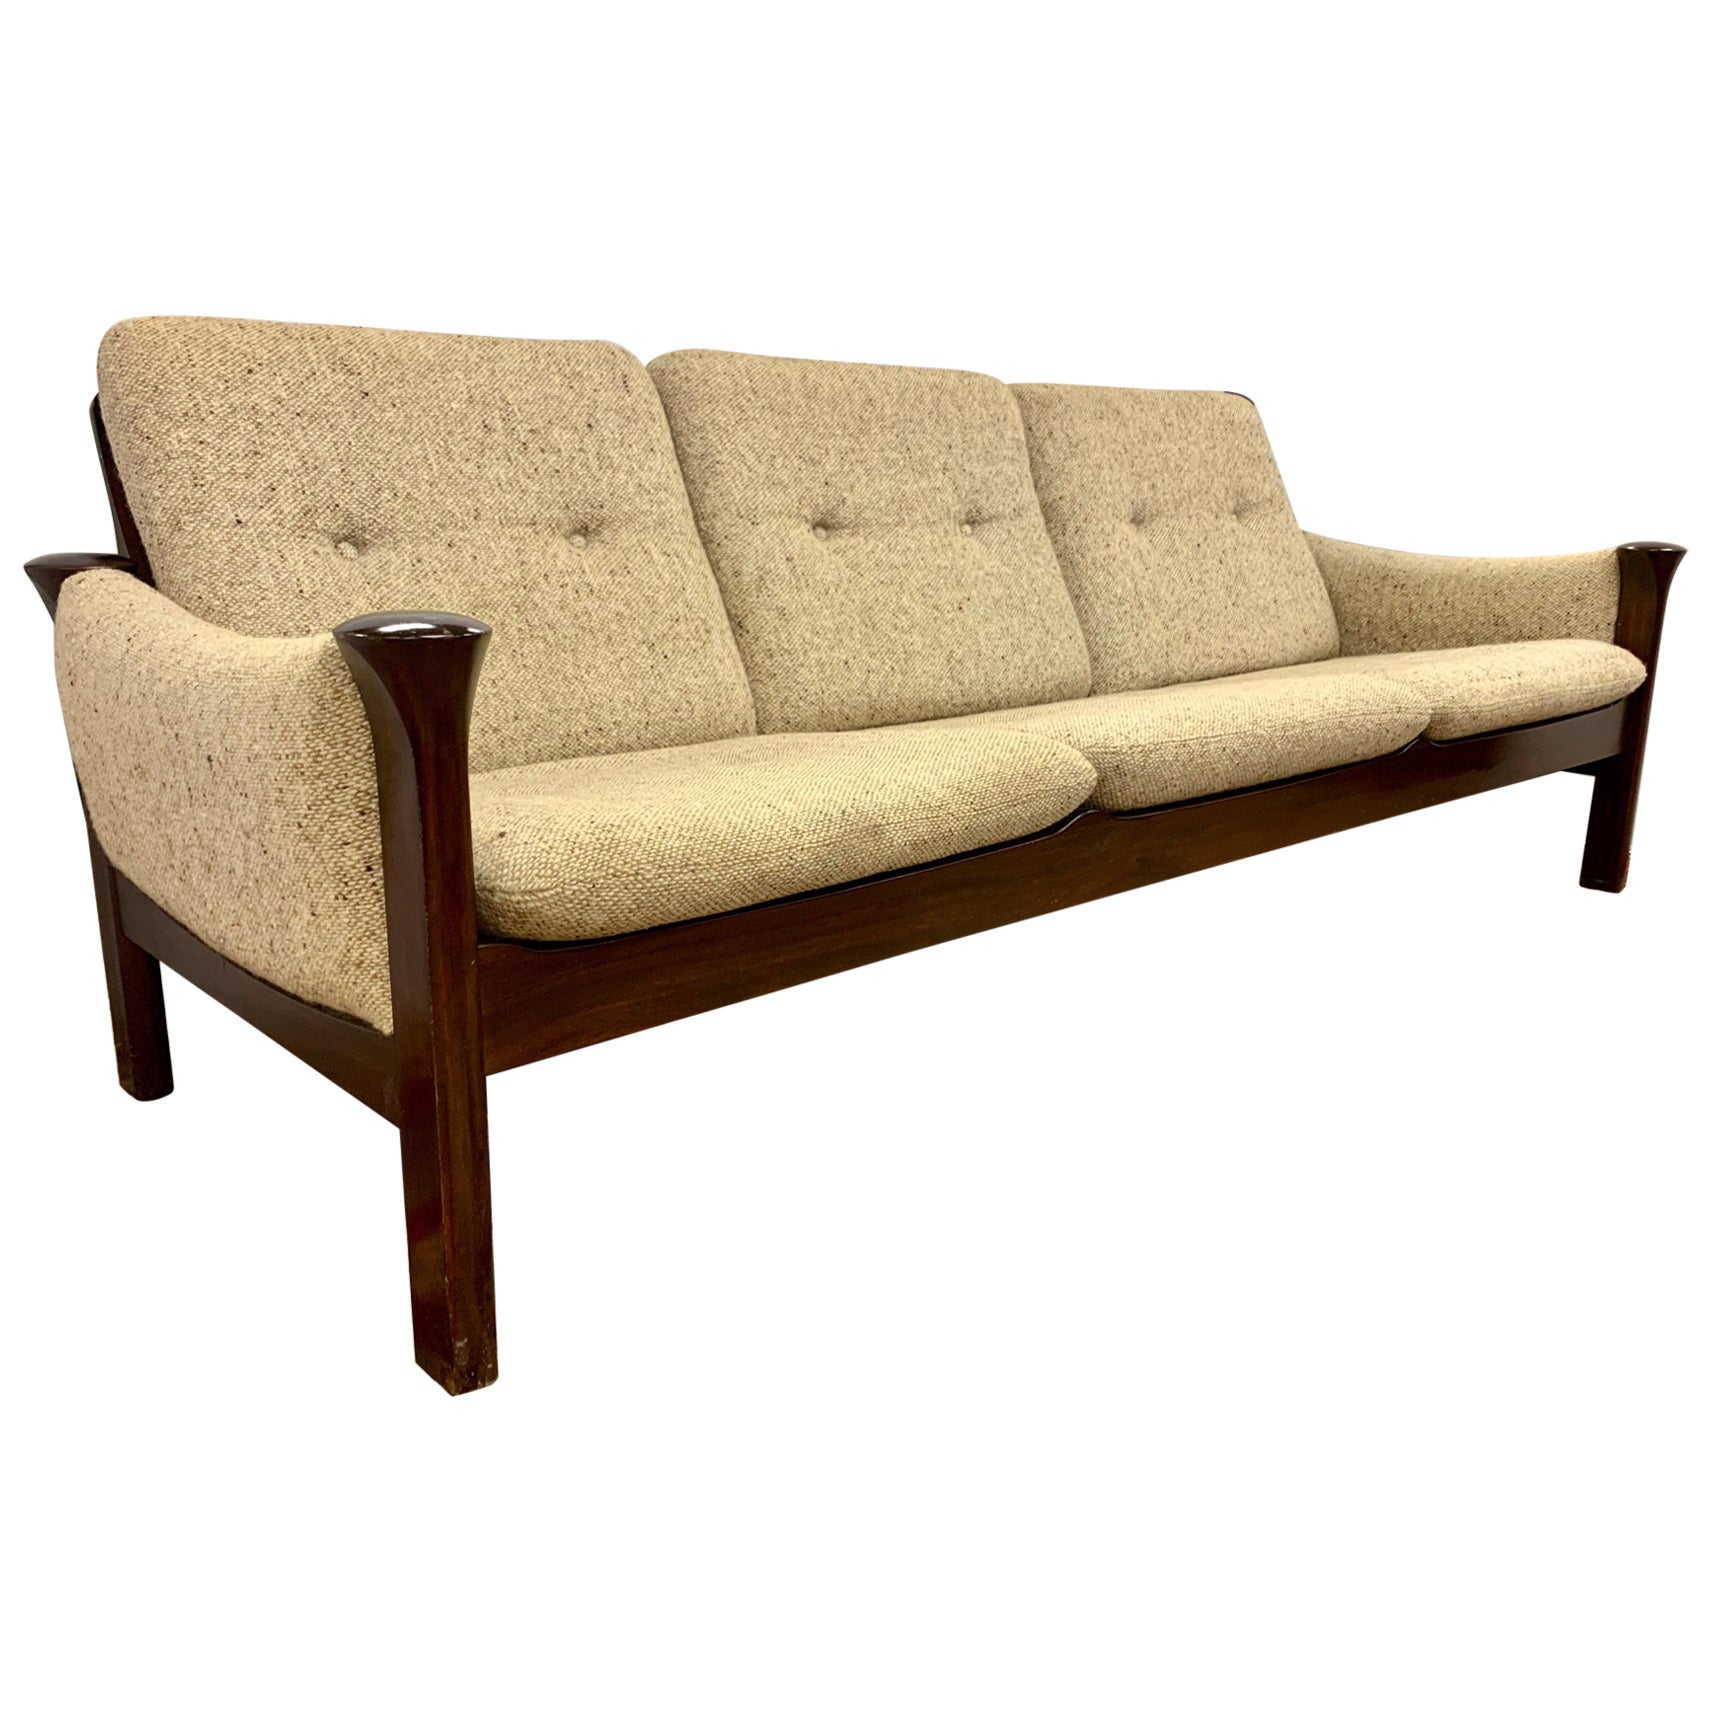 Arne Vodder for Cado Furniture Denmark Signed Three-Seat Danish Modern Sofa